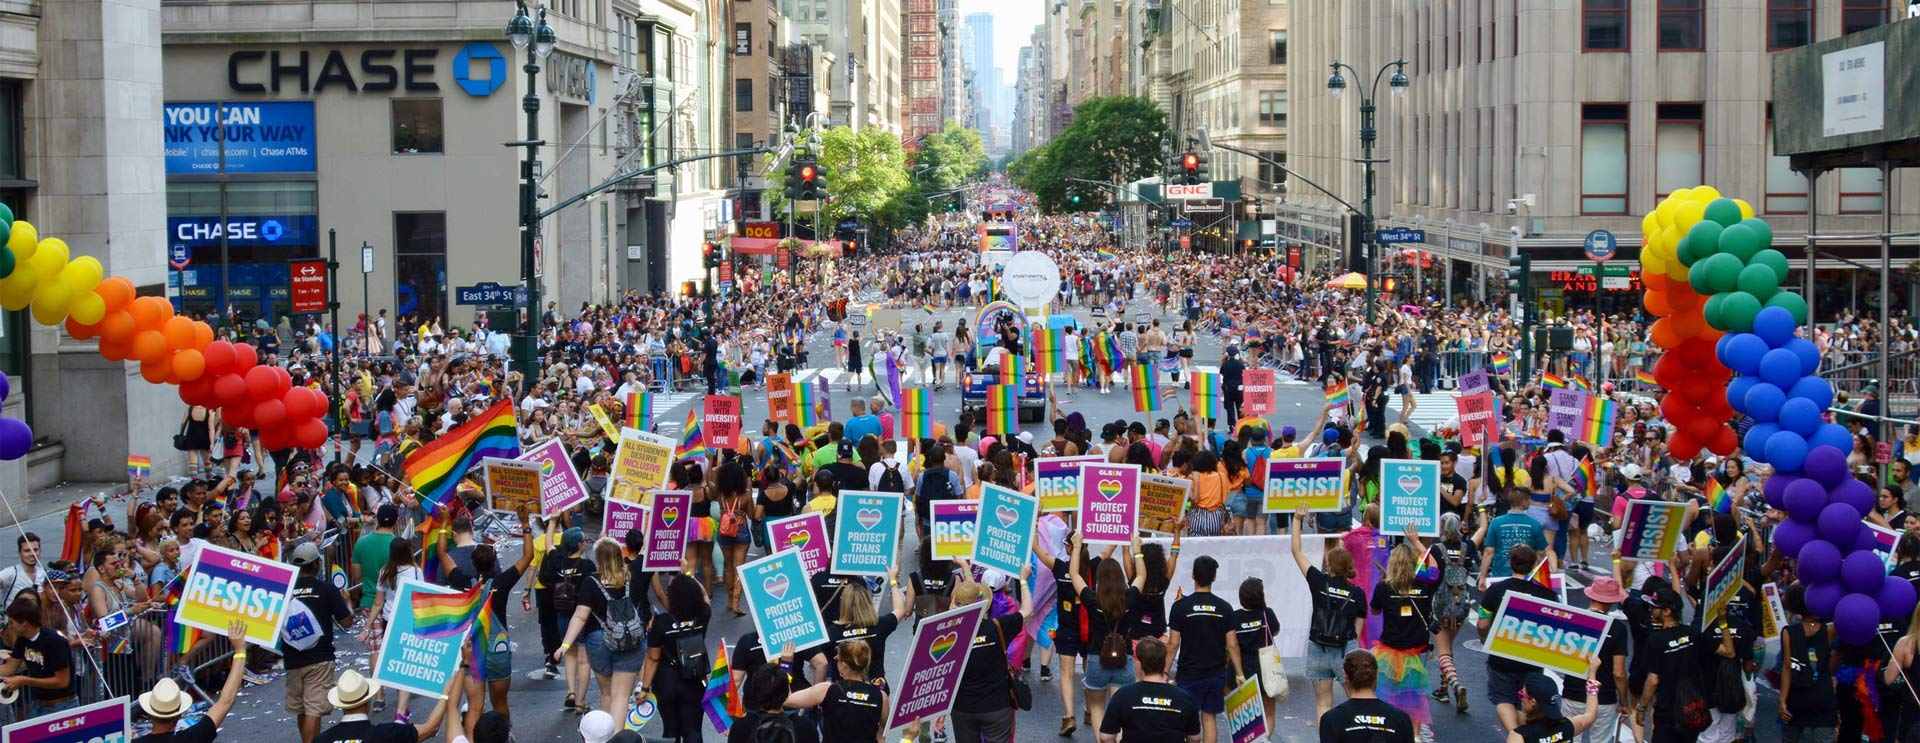 Photo of thousands of people at Pride with focus on the GLSEN block